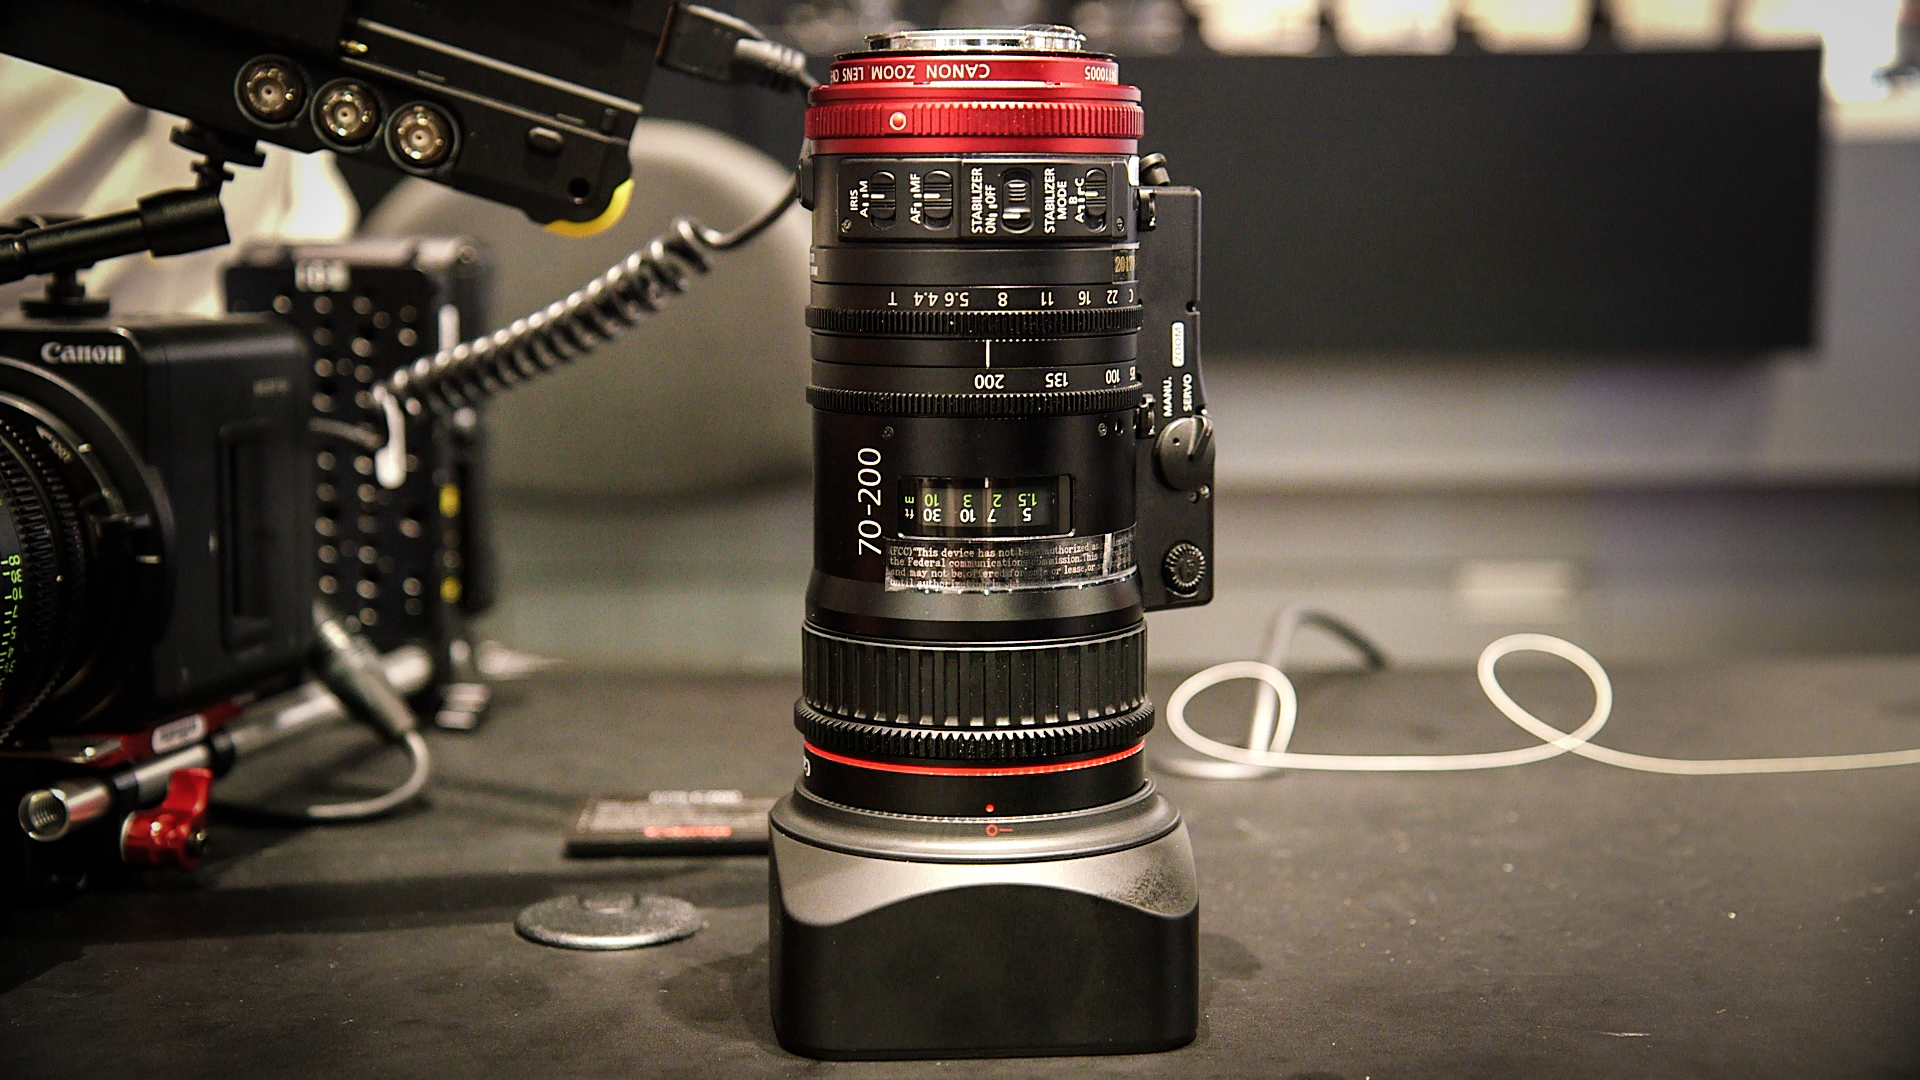 Hands on with the Canon Compact Cine Servo 70-200 T4 4 | Shot With a